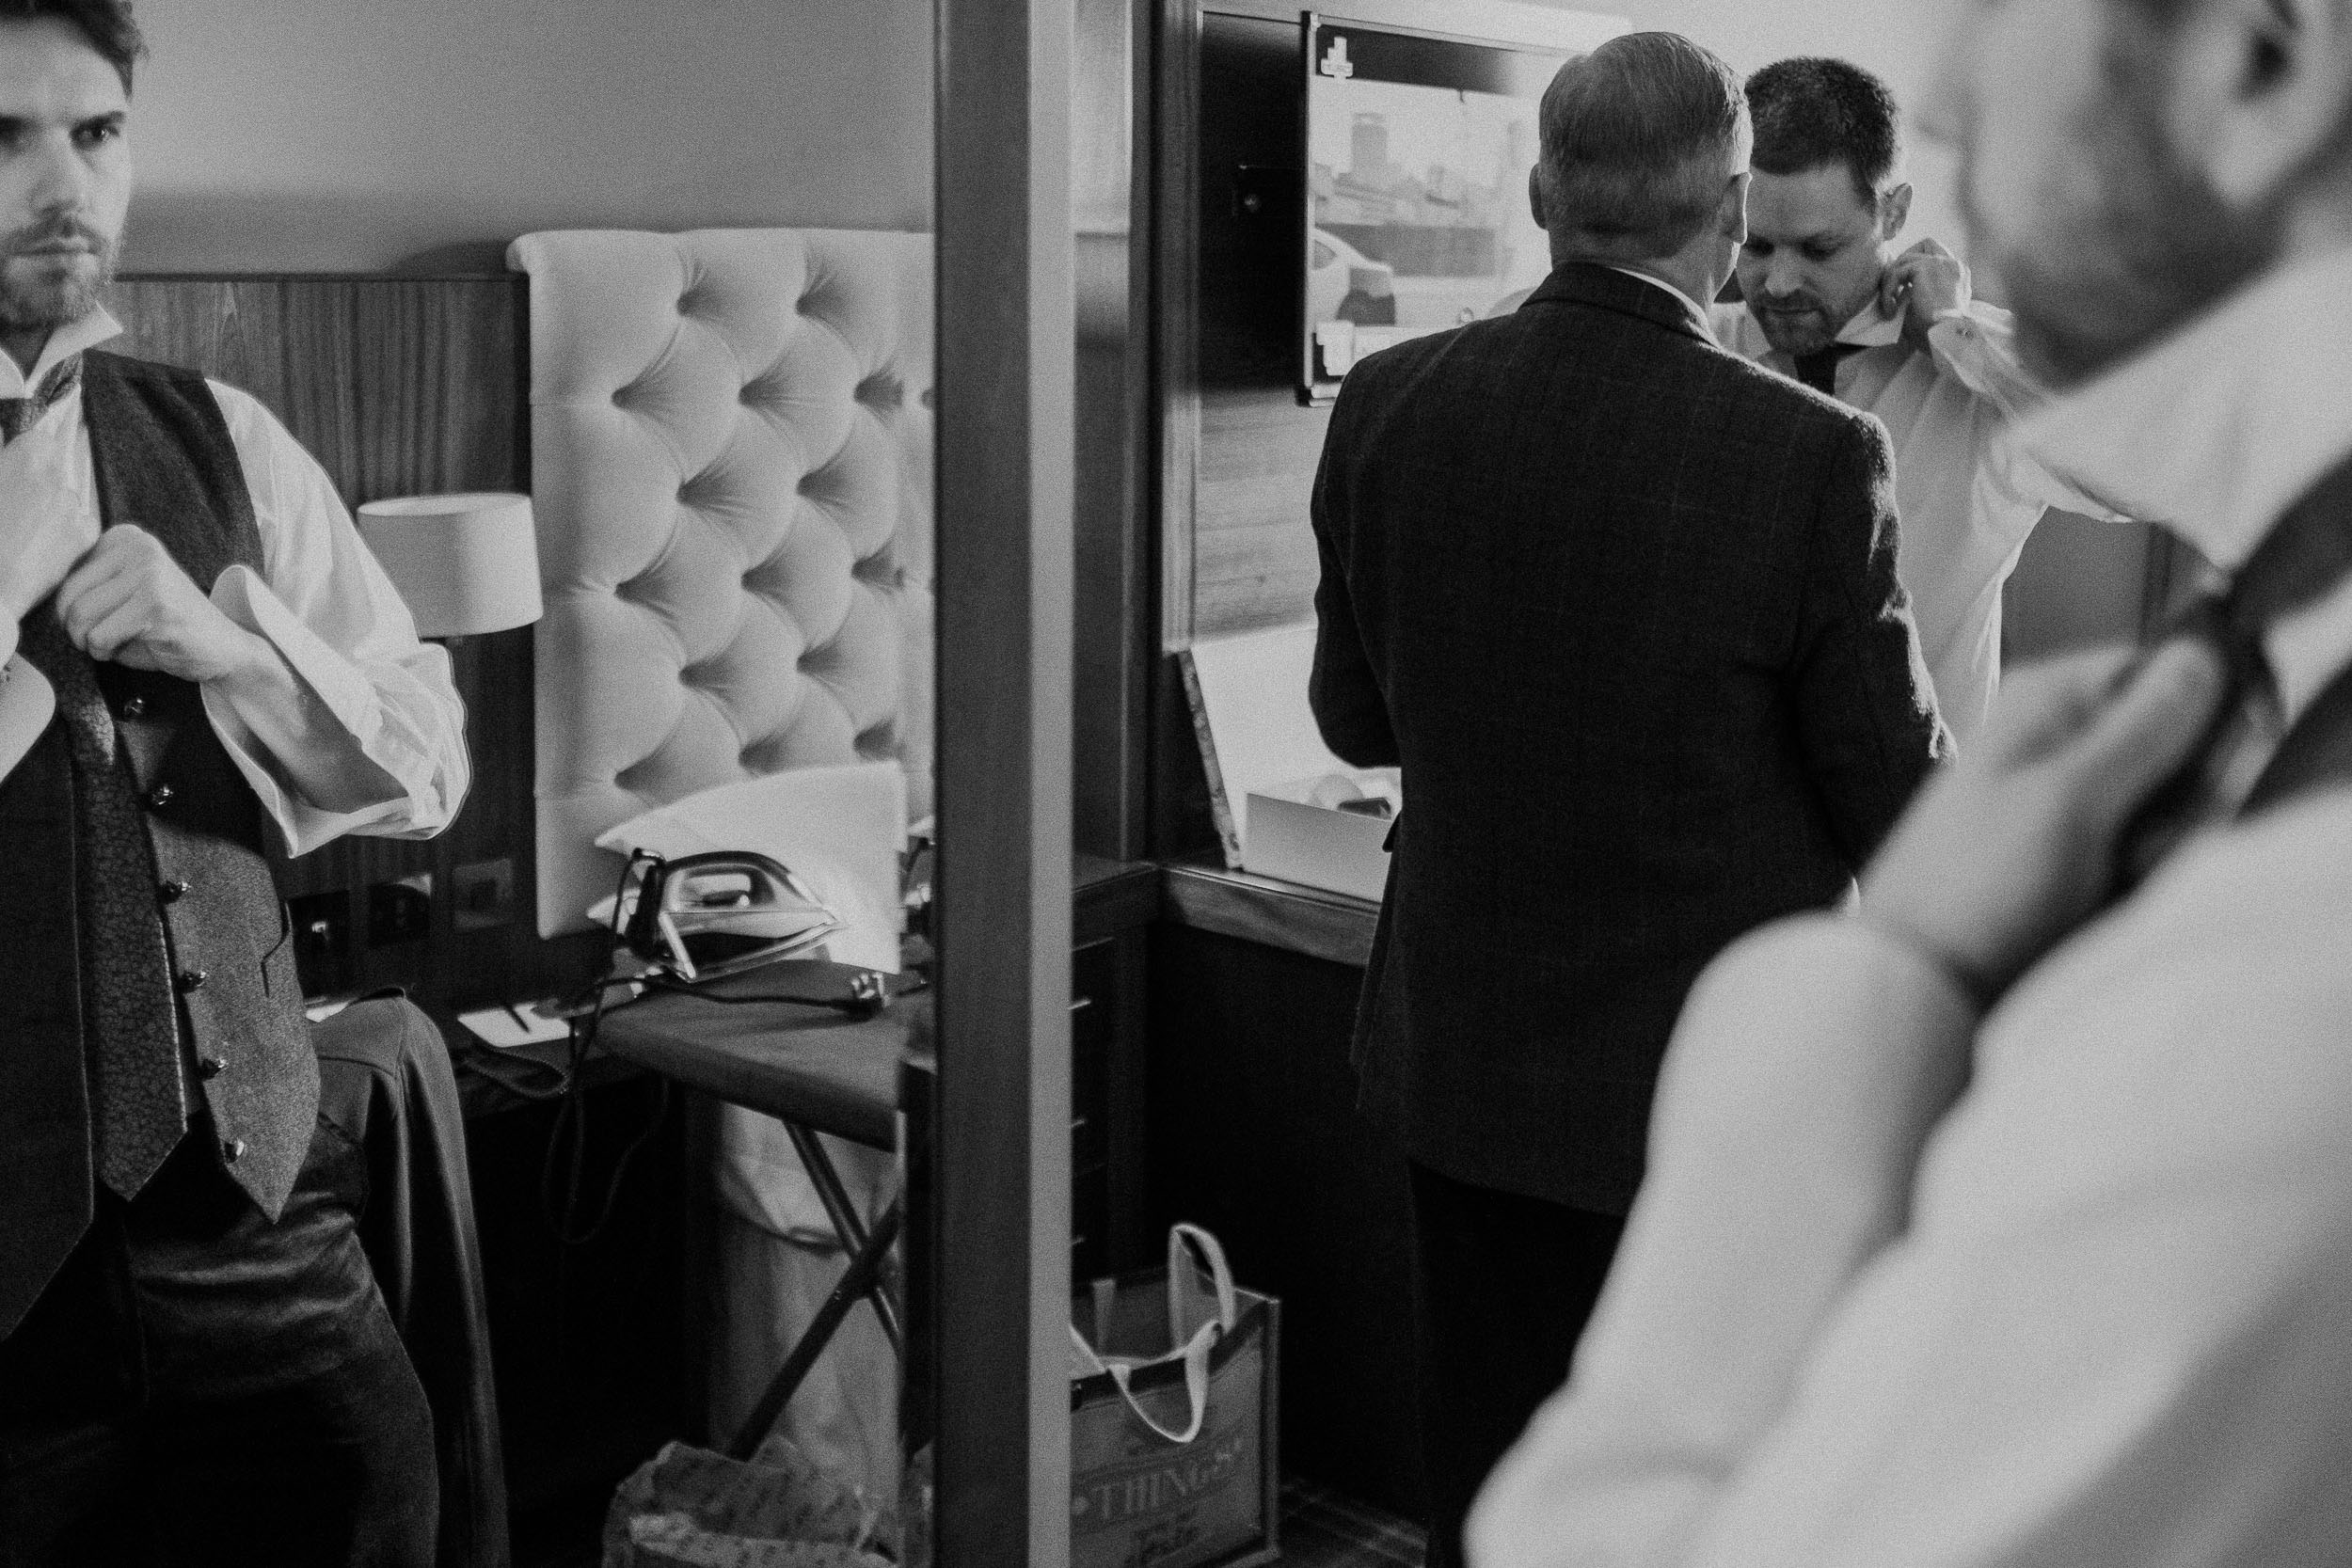 Black and white photo of groom and best man getting ready